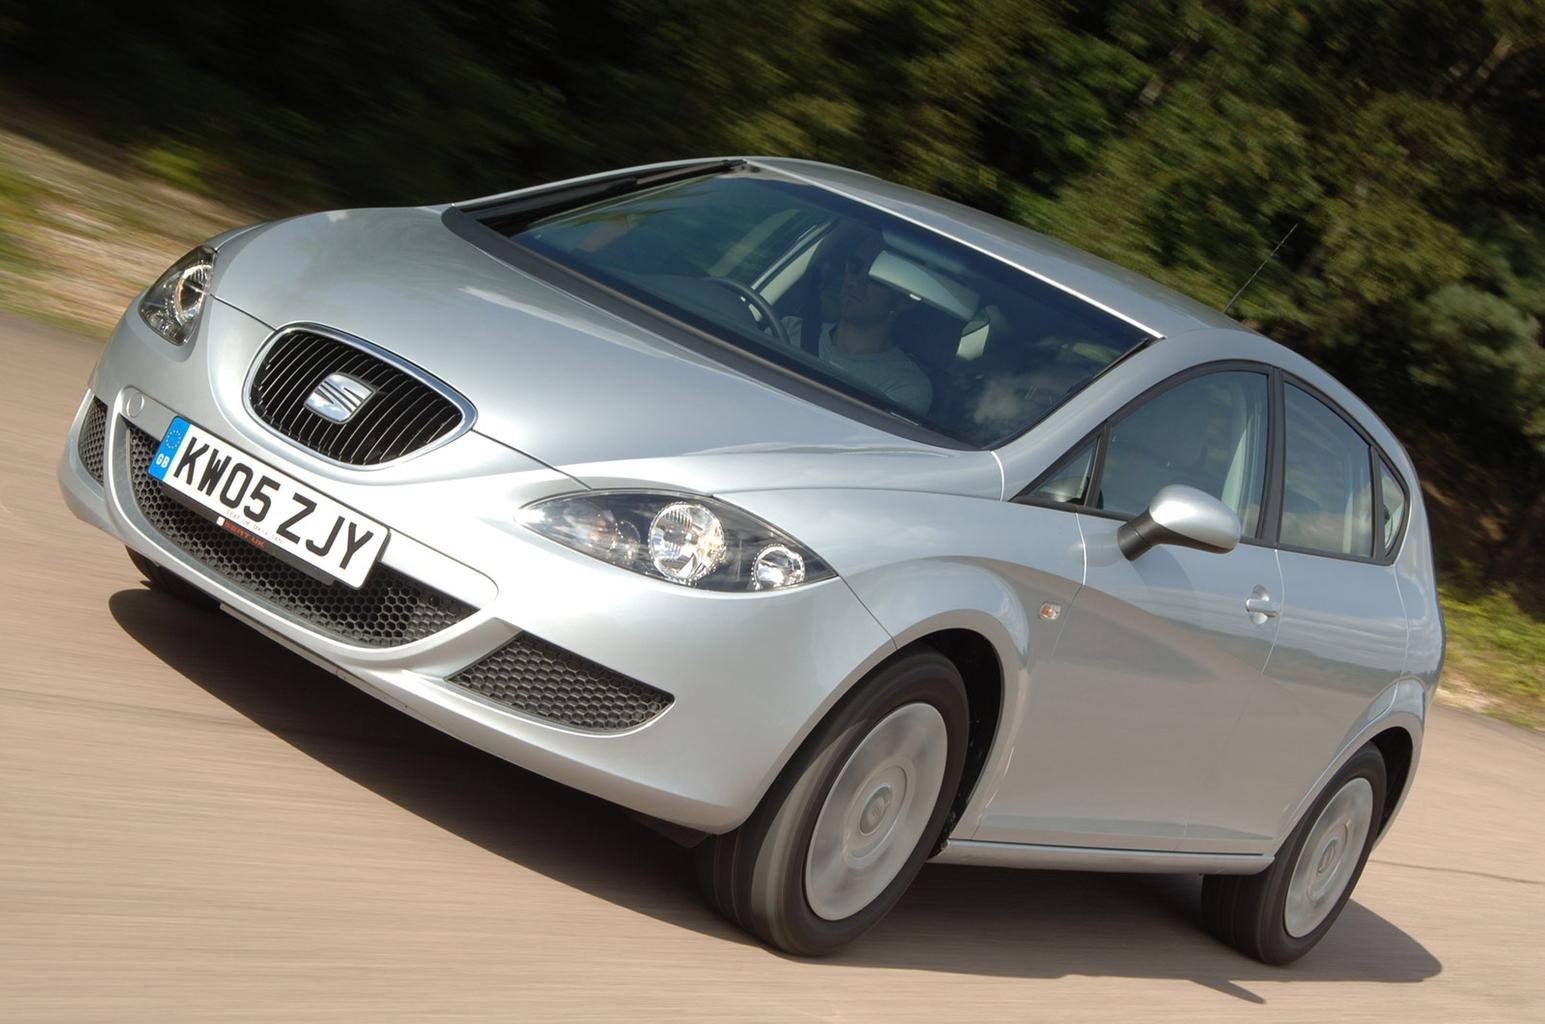 7 reasons to buy a Seat Leon